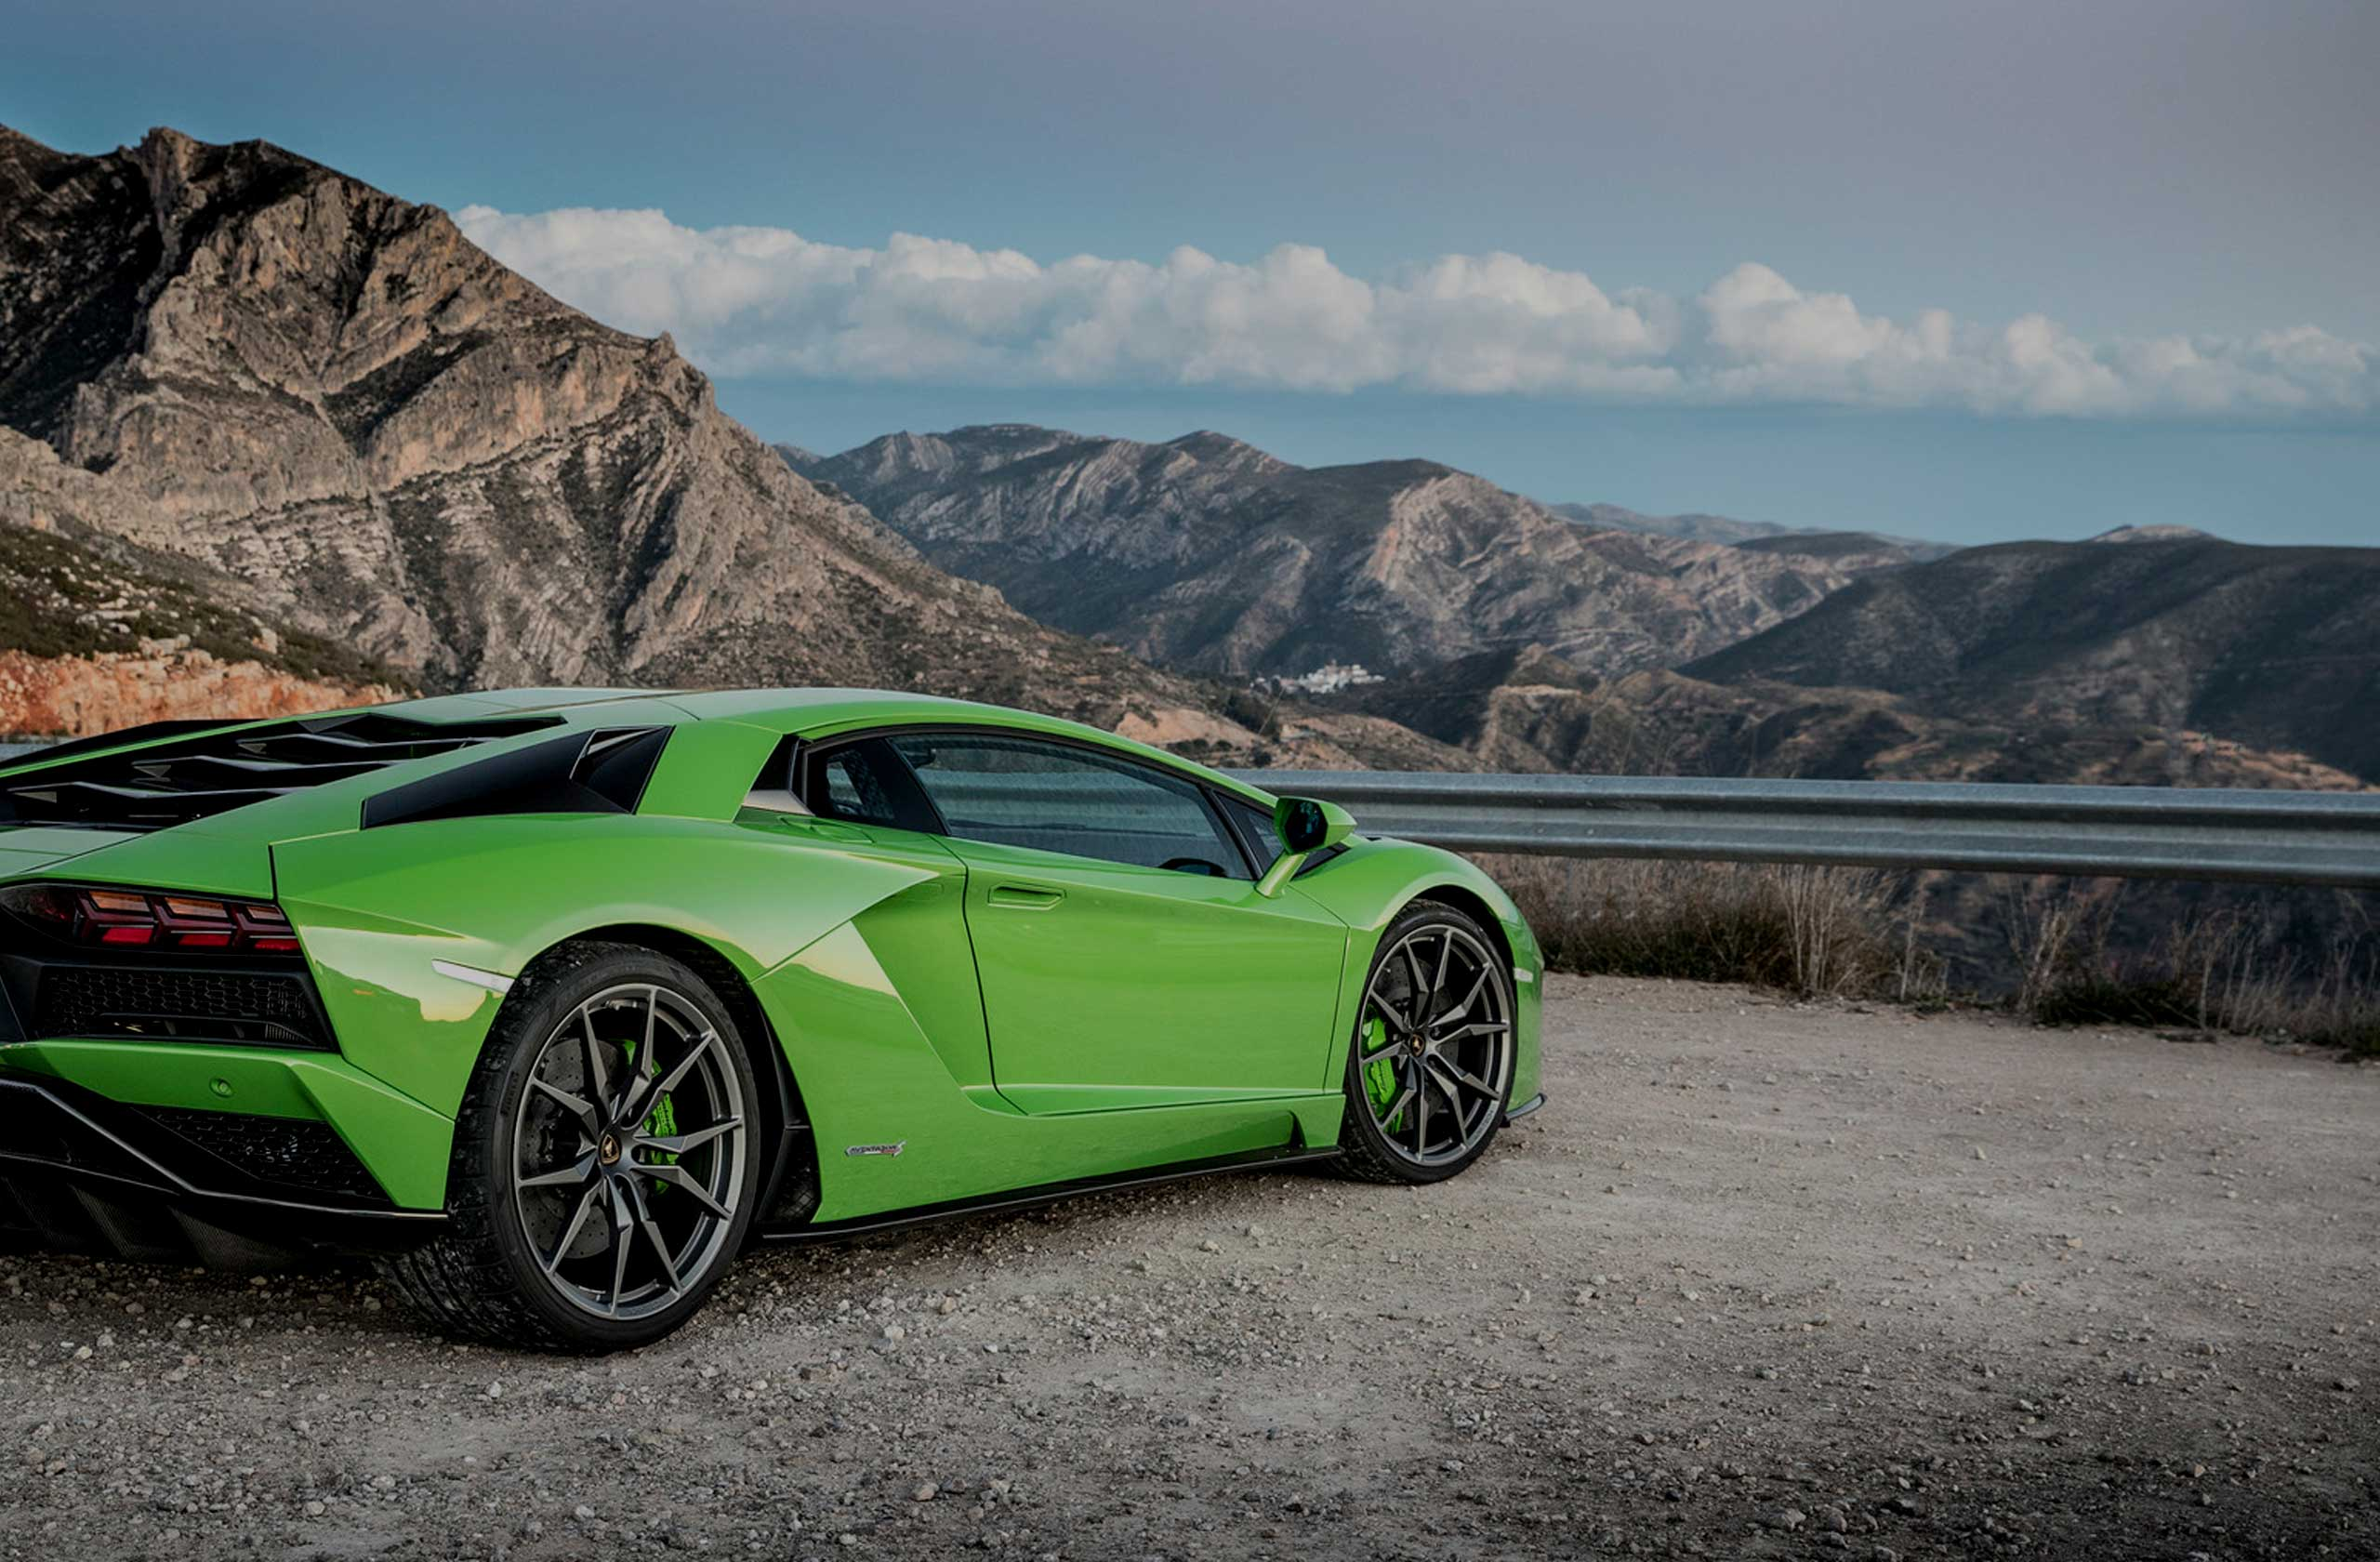 Luxury Road Rally Europe - Green Lamborghini Aventador - Slap Adventures